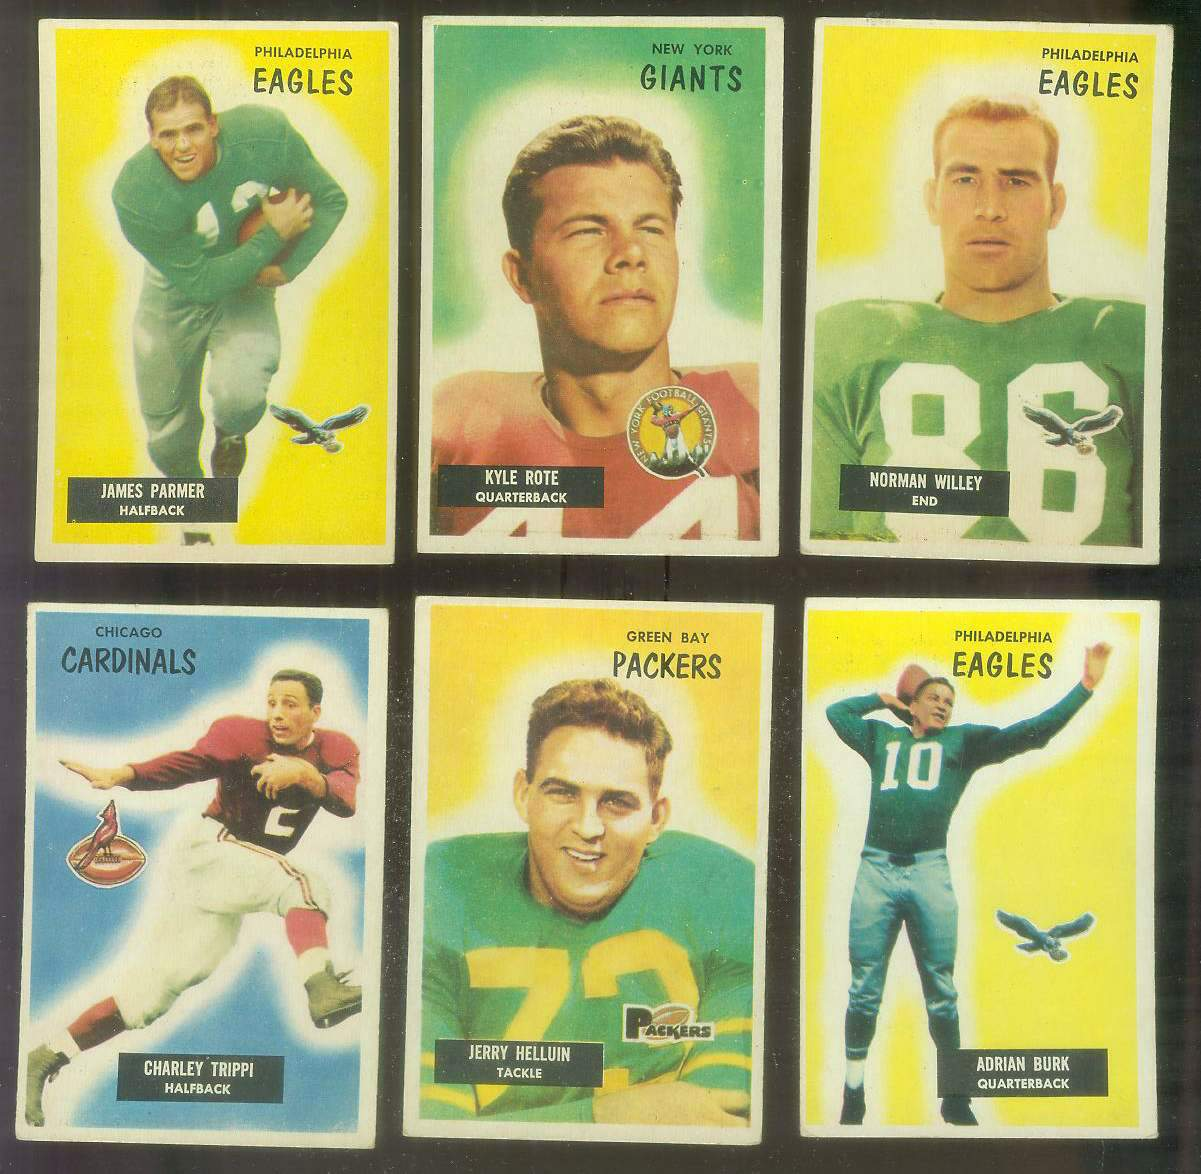 1955 Bowman FB #135 James Parmer (Eagles) Football cards value